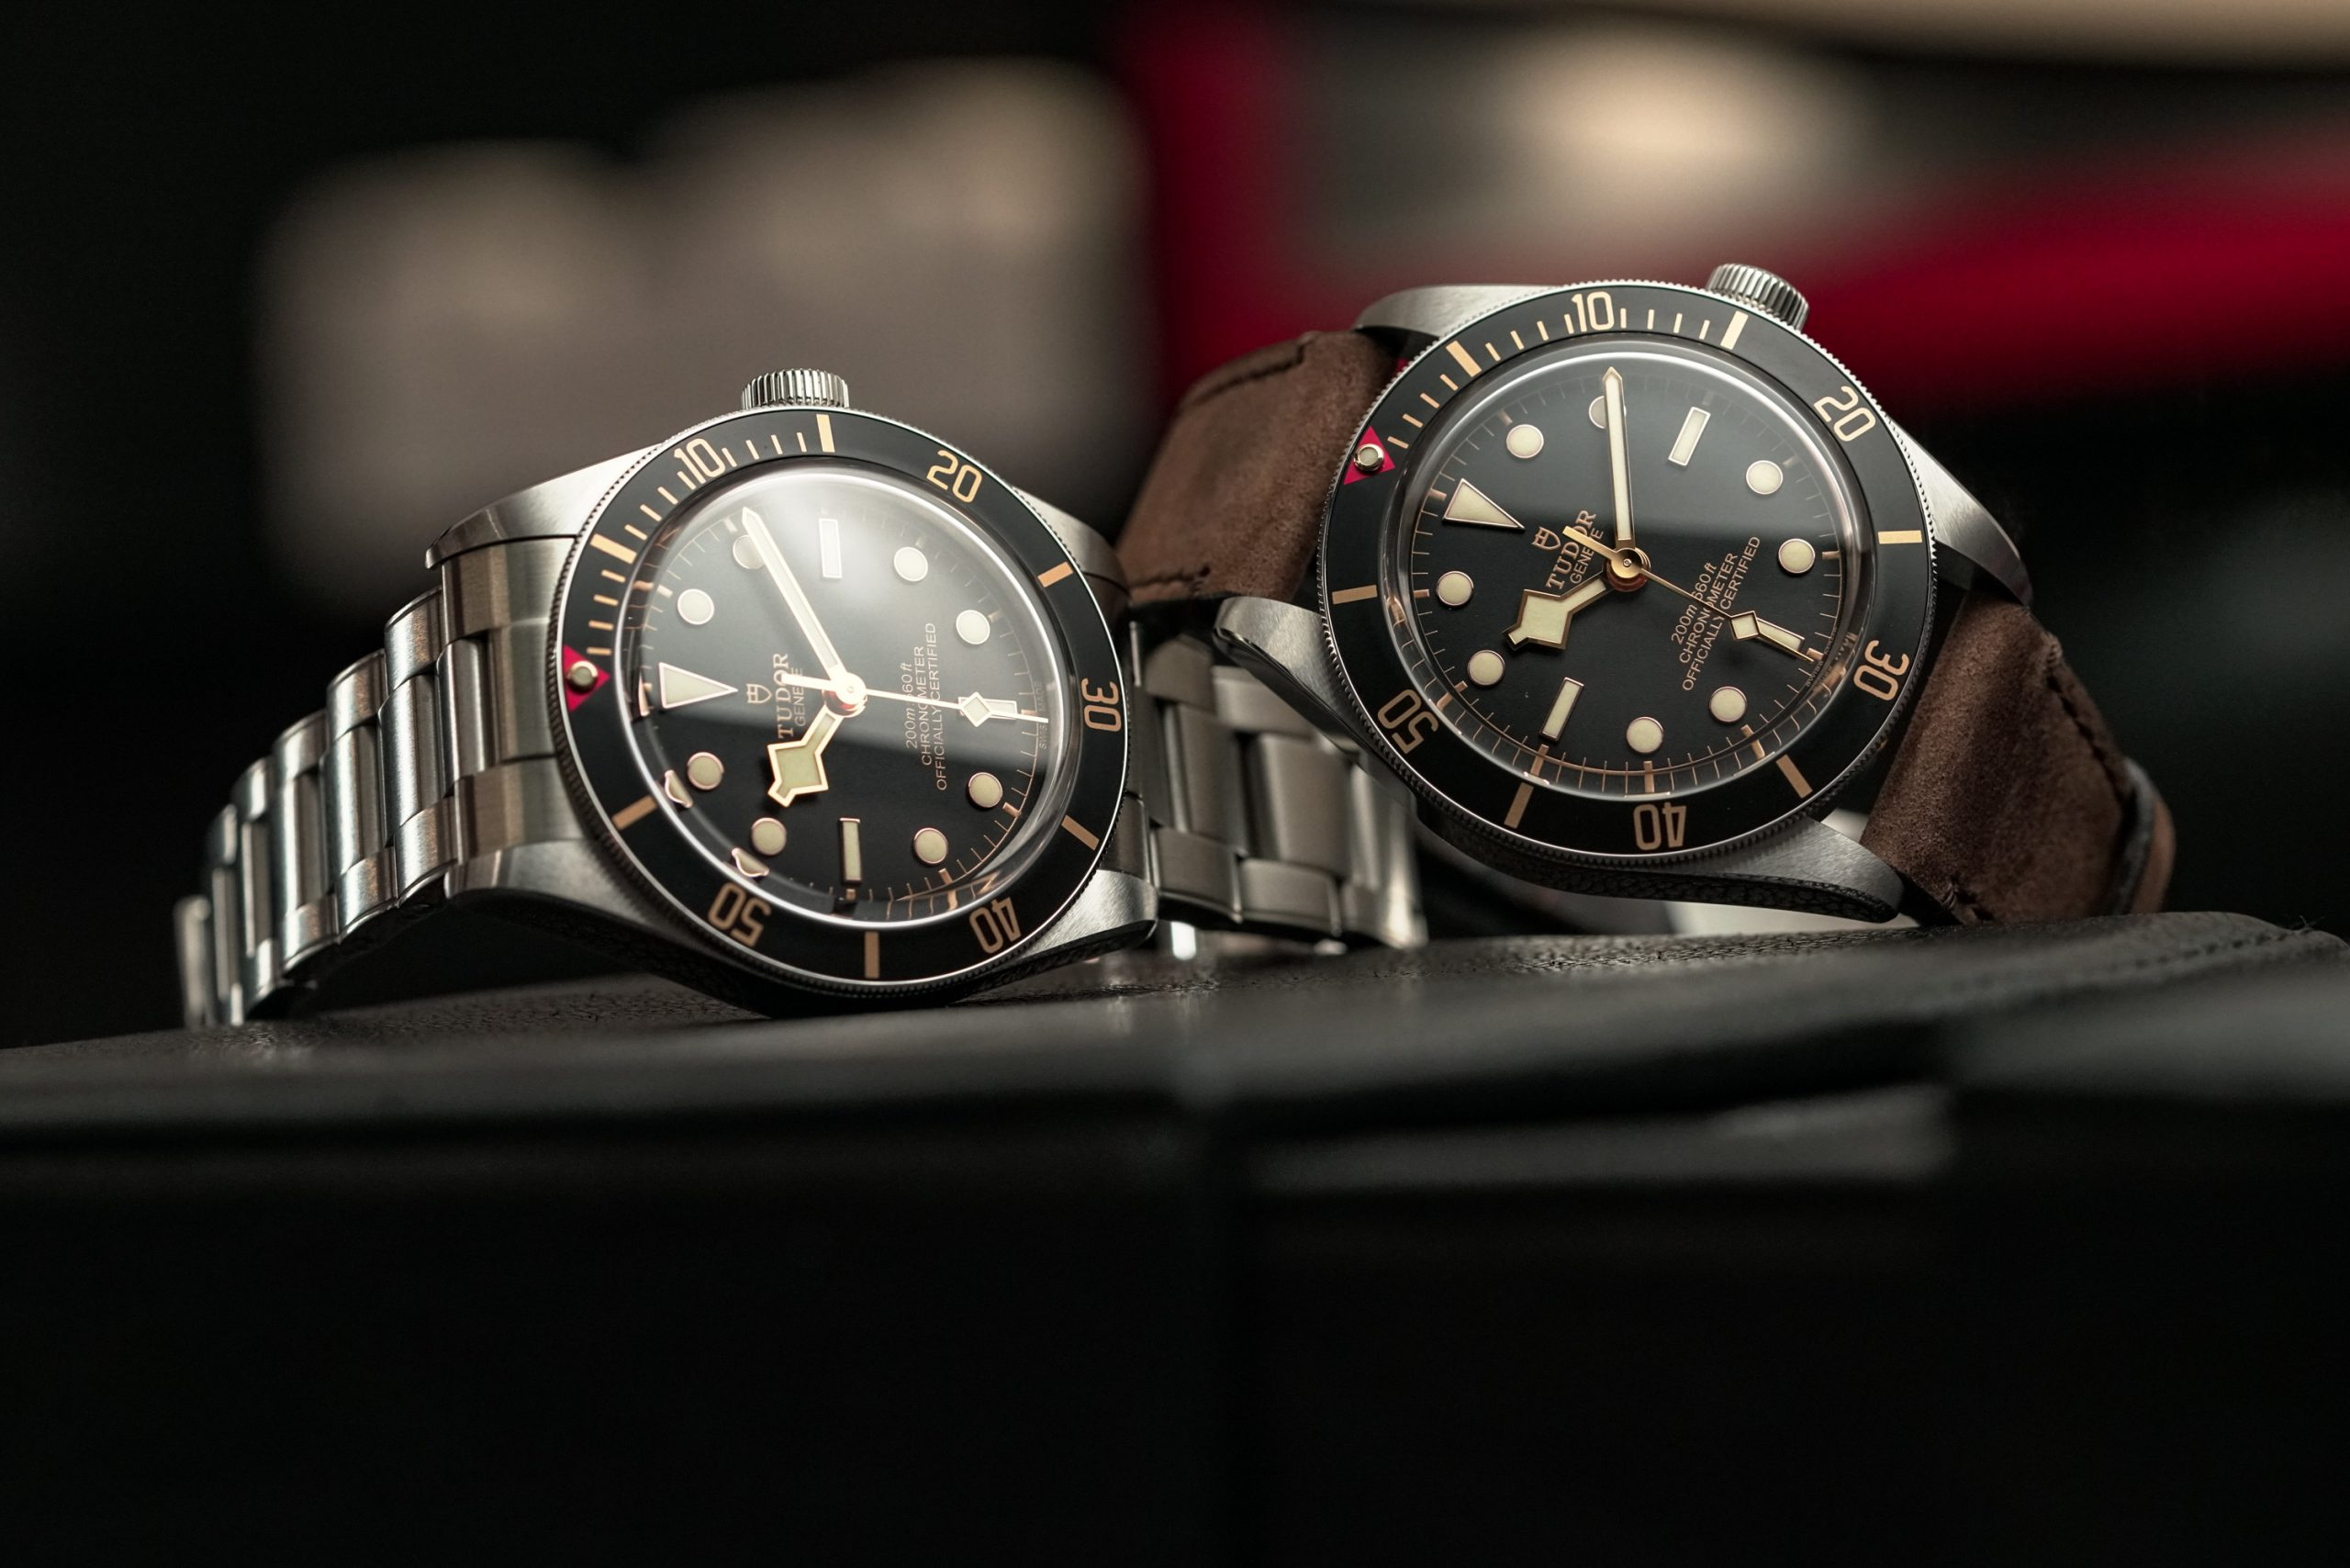 LIST: Andrew's Top 10 from Basel, including the watch he got wrong